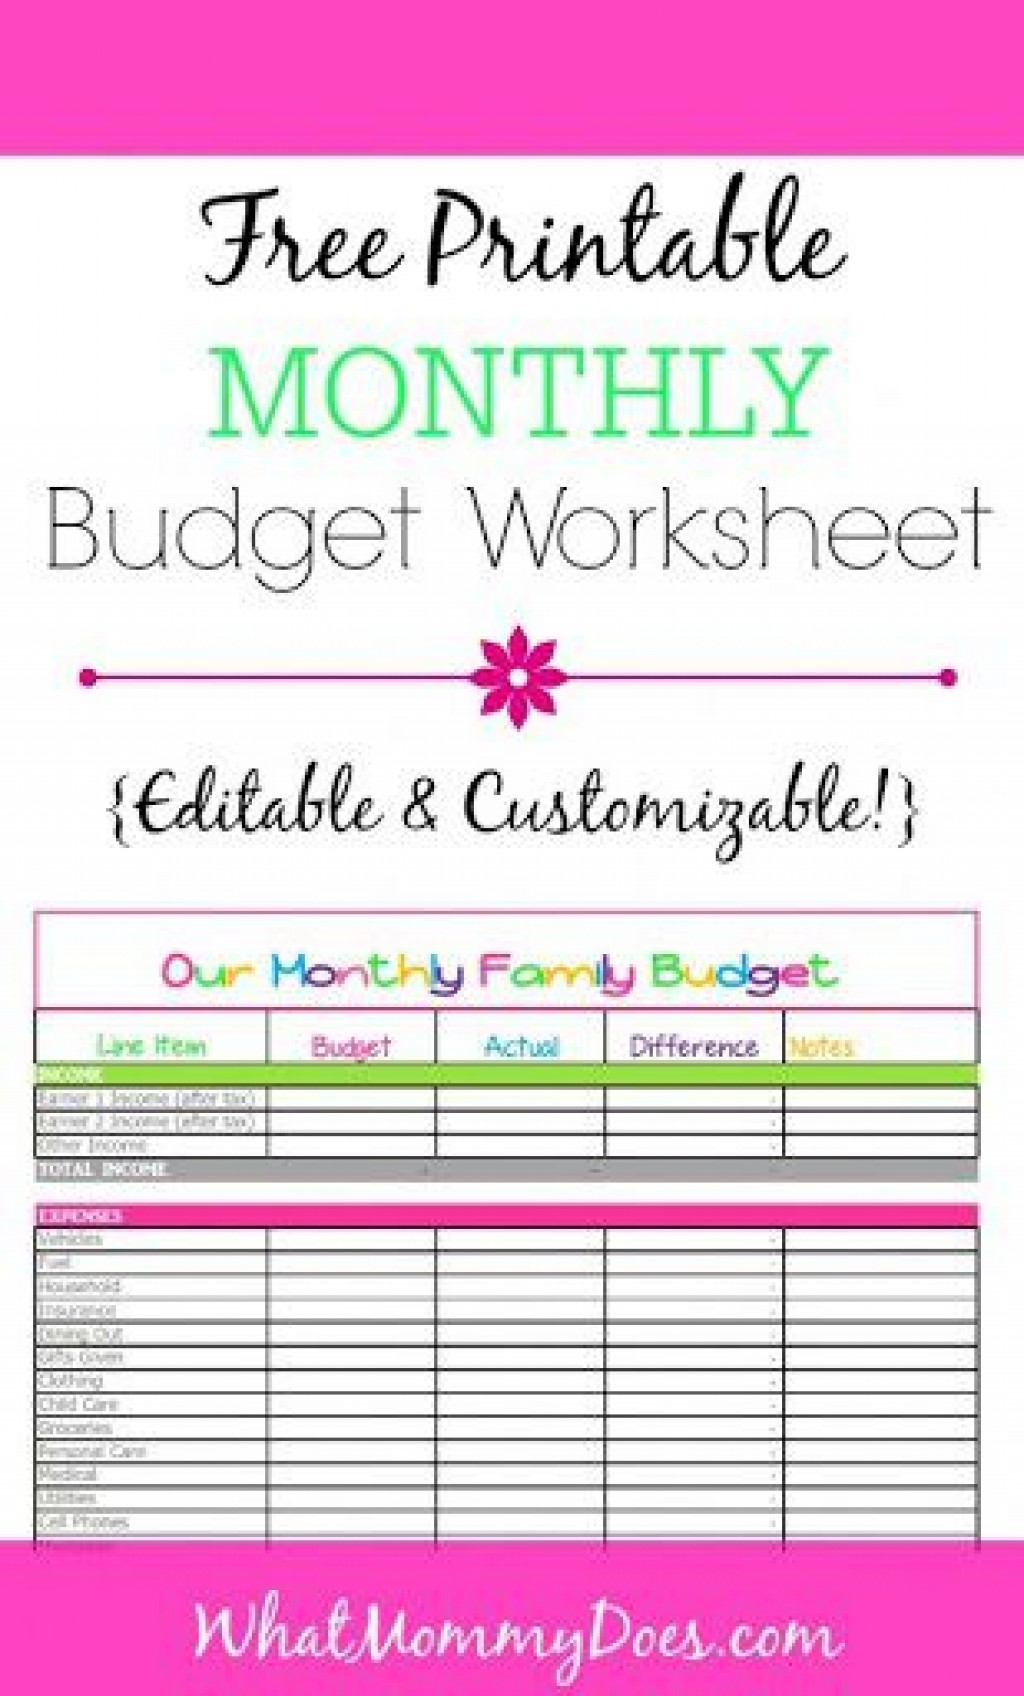 009 Impressive Free Printable Monthly Household Budget Template Picture  ExpenseLarge